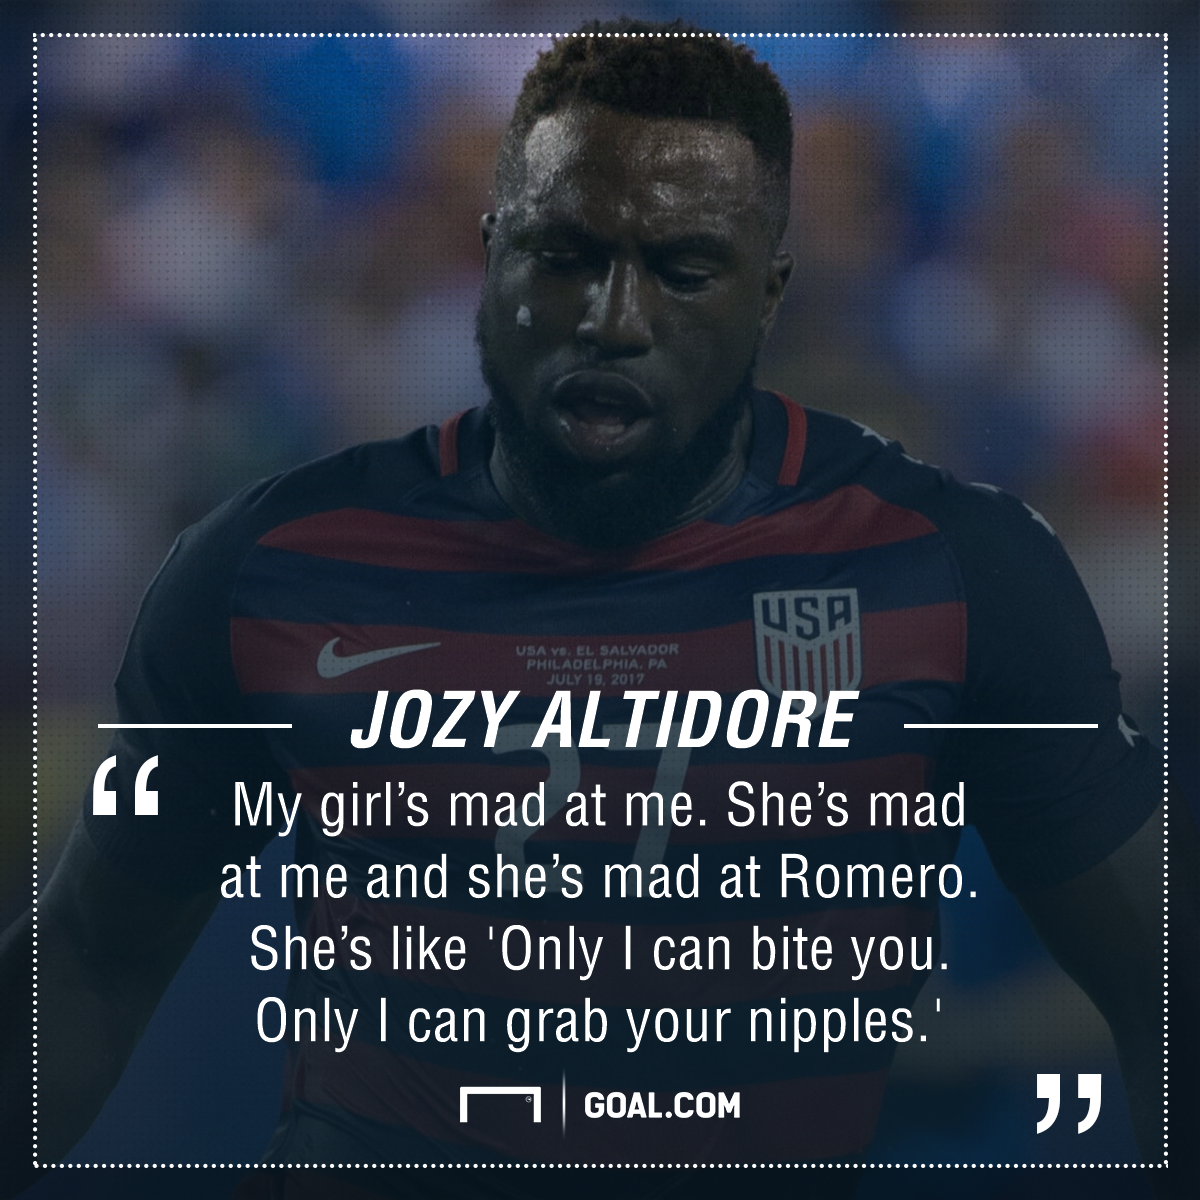 Henry Romero Appears to Bite Jozy Altidore During 2017 Gold Cup